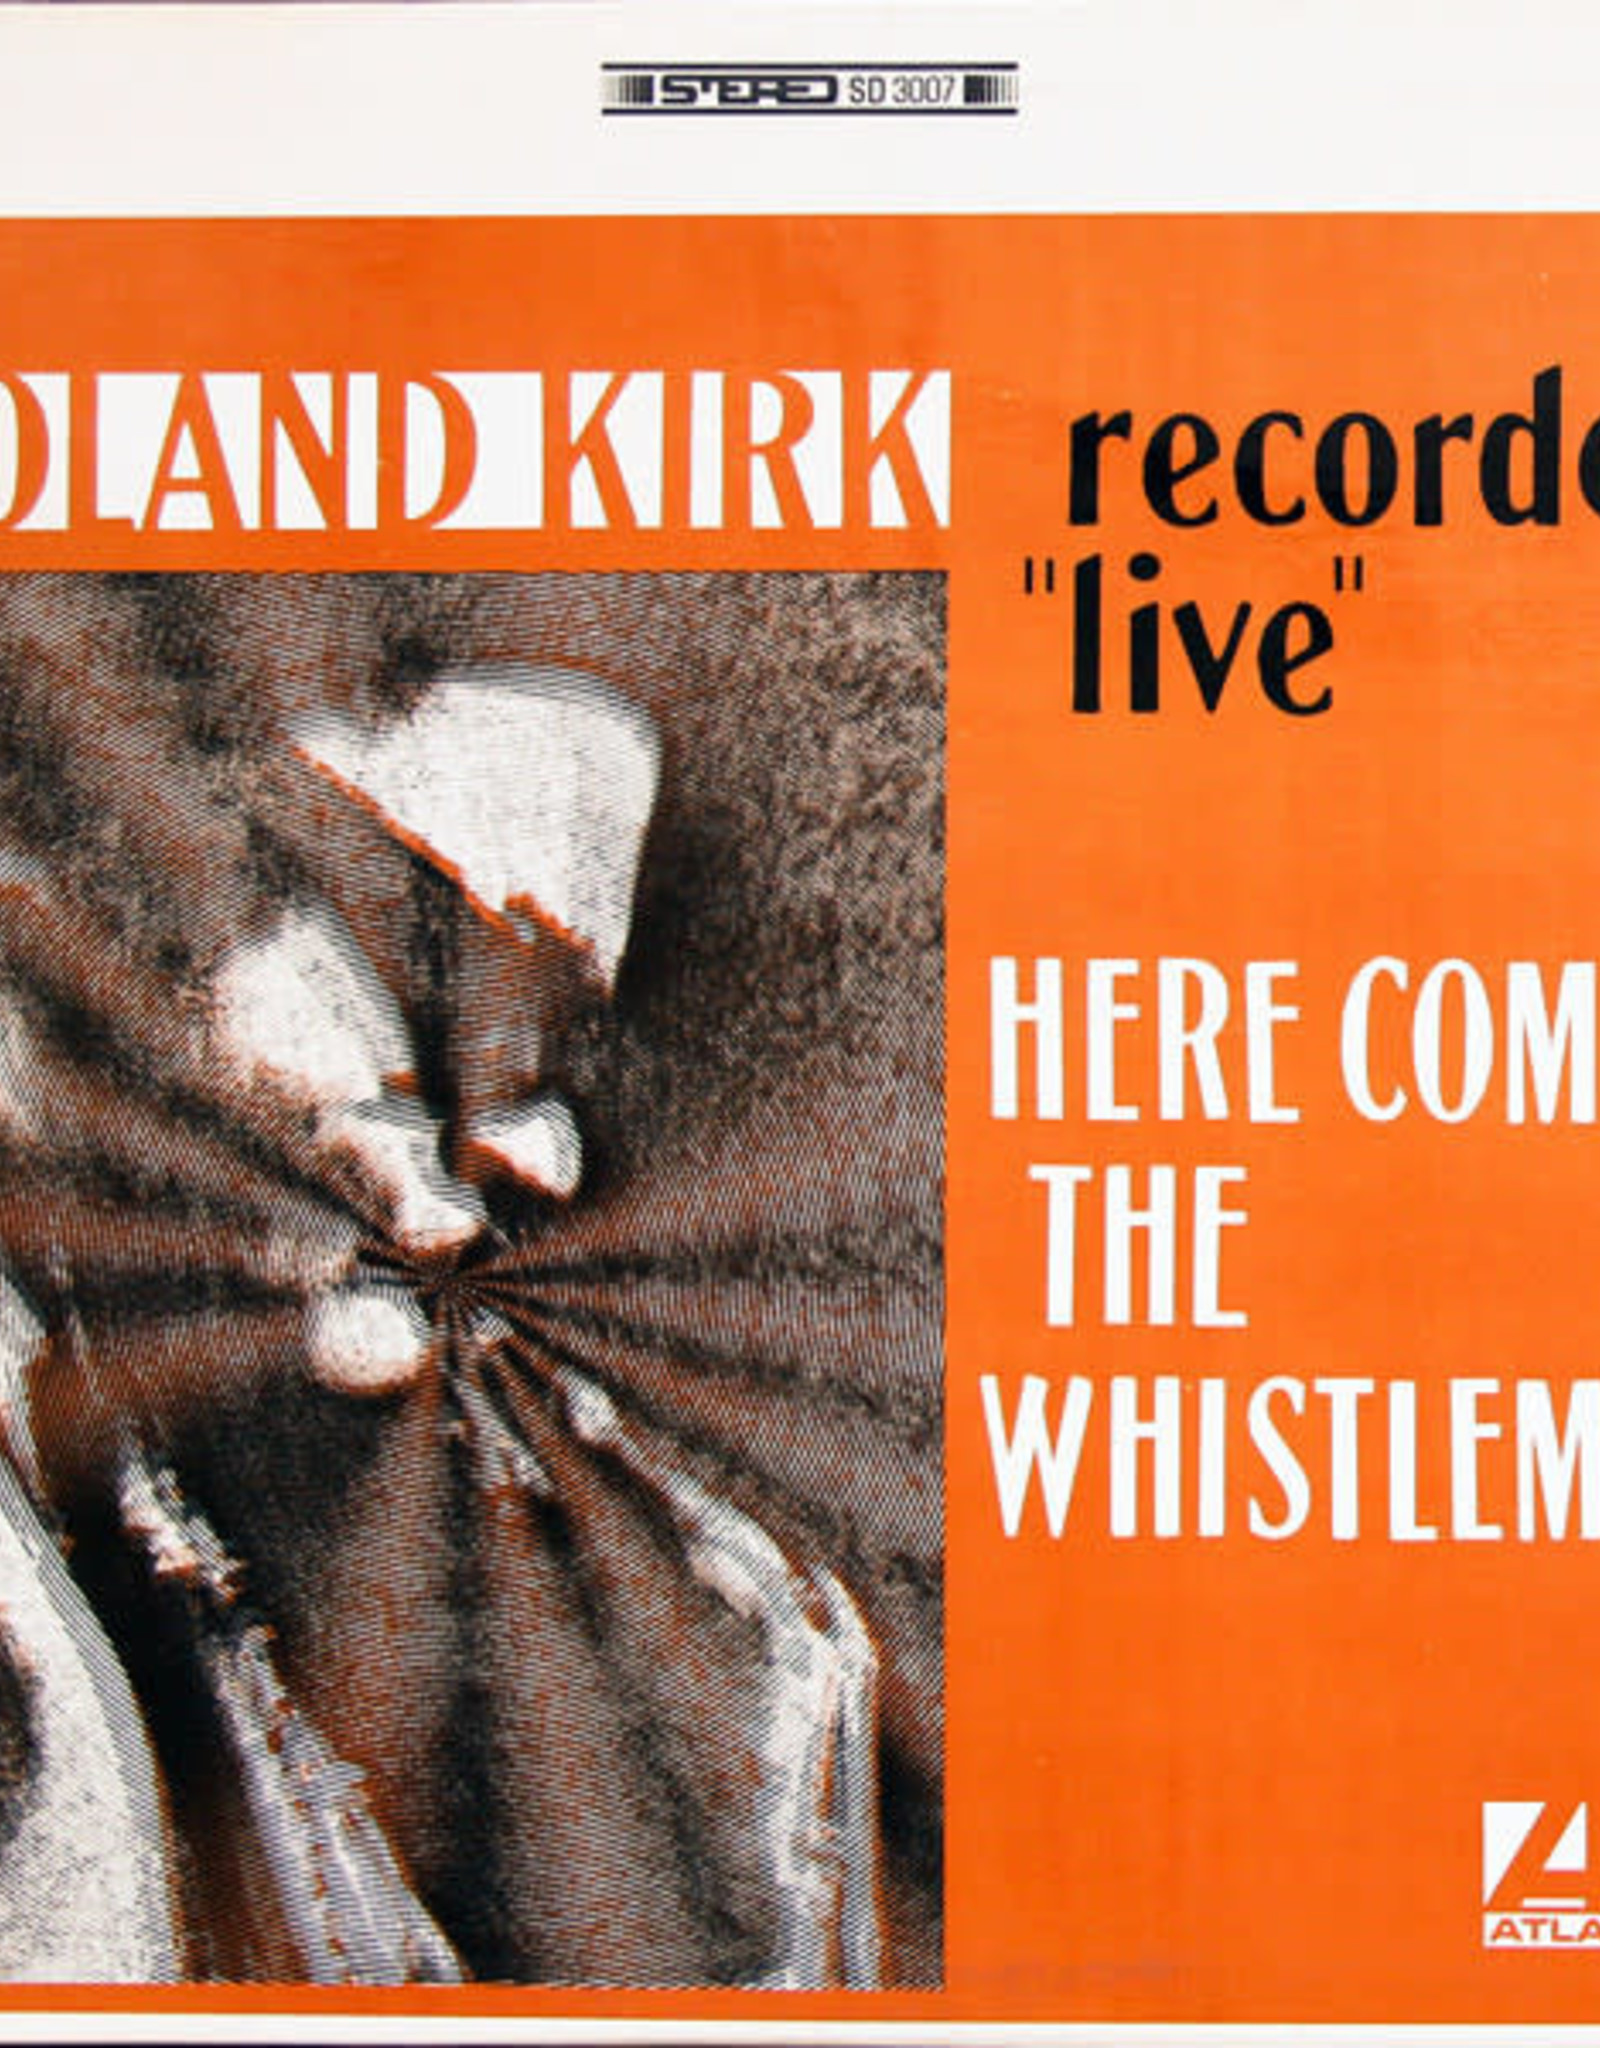 Roland Kirk - Here Comes The Whistleman